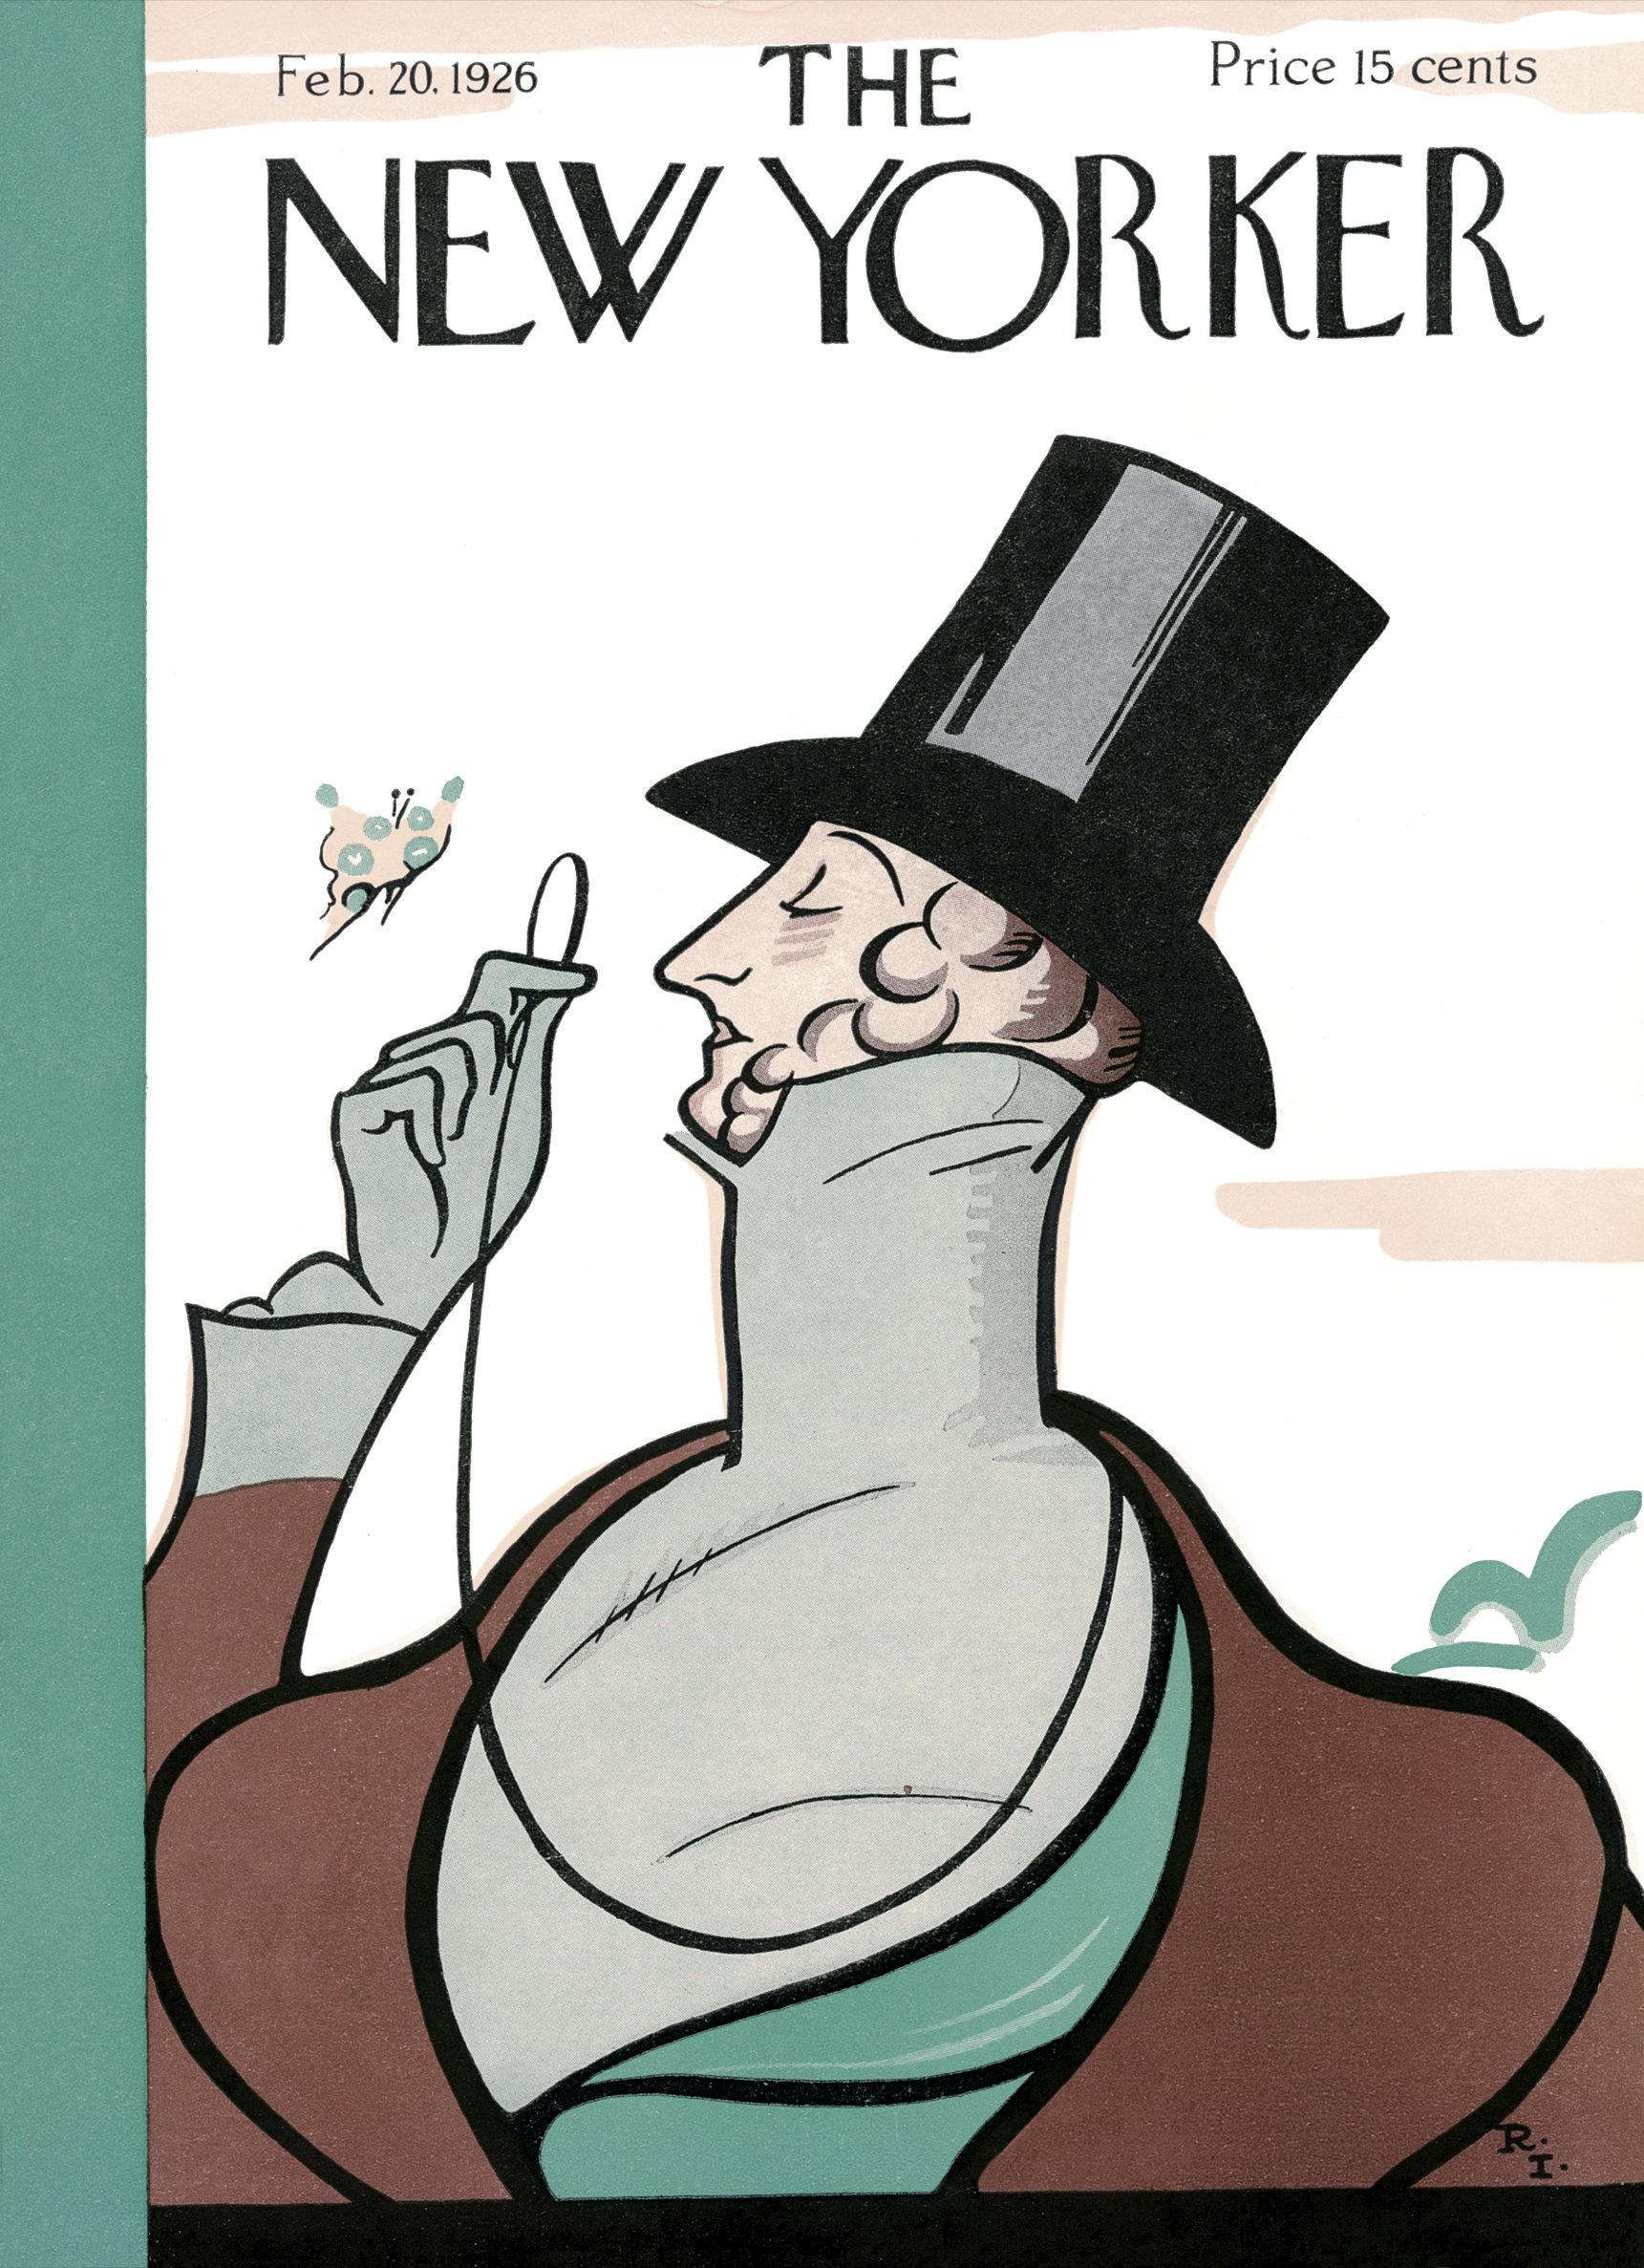 The New Yorker Festival: Entertaining, Informing, and Enriching New York for Nearly a Century